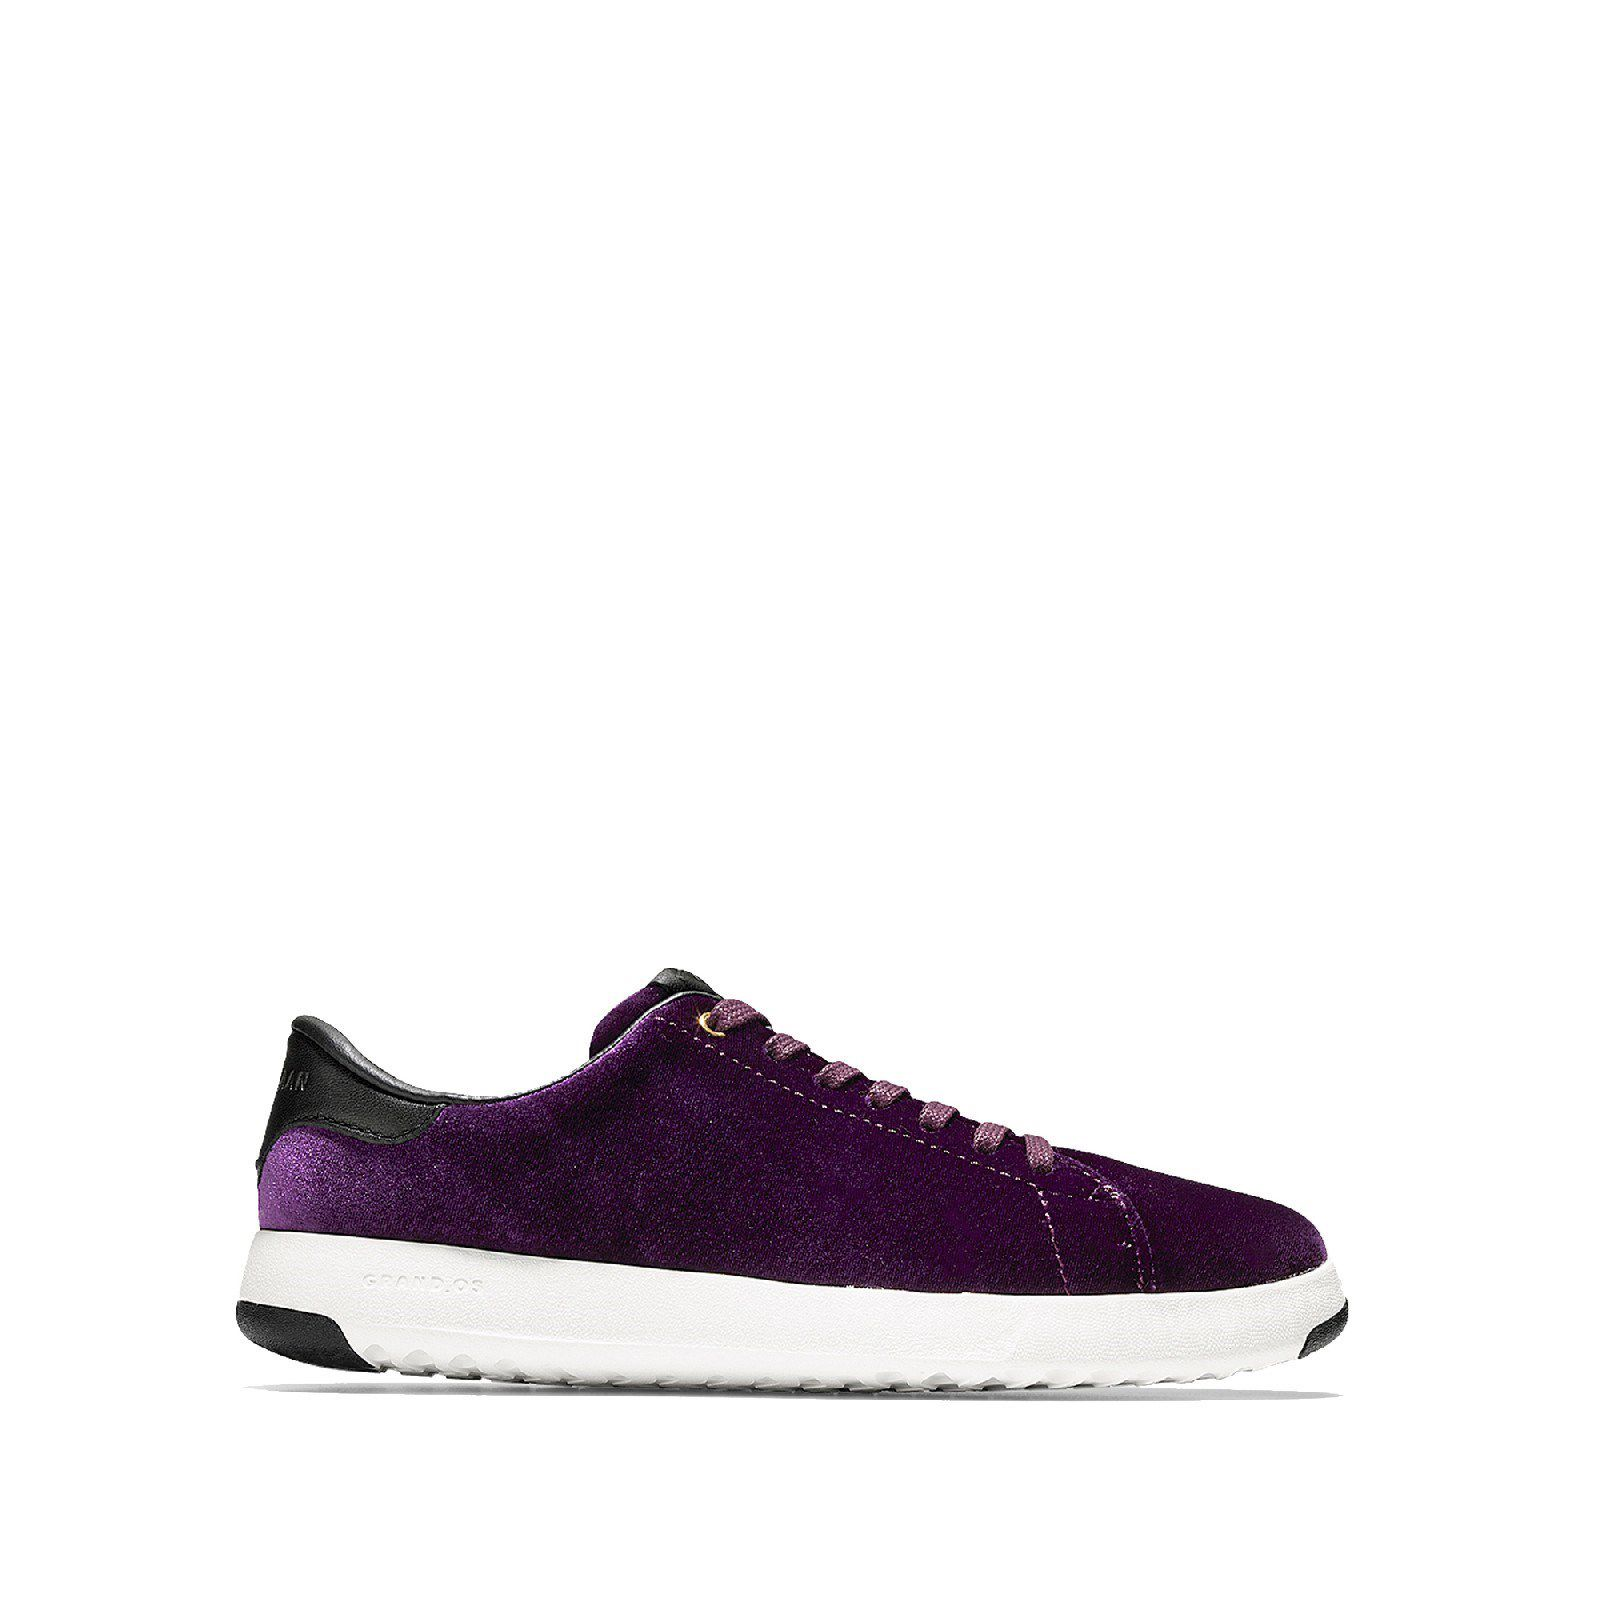 Cole Haan GrandPro Tennis, Red